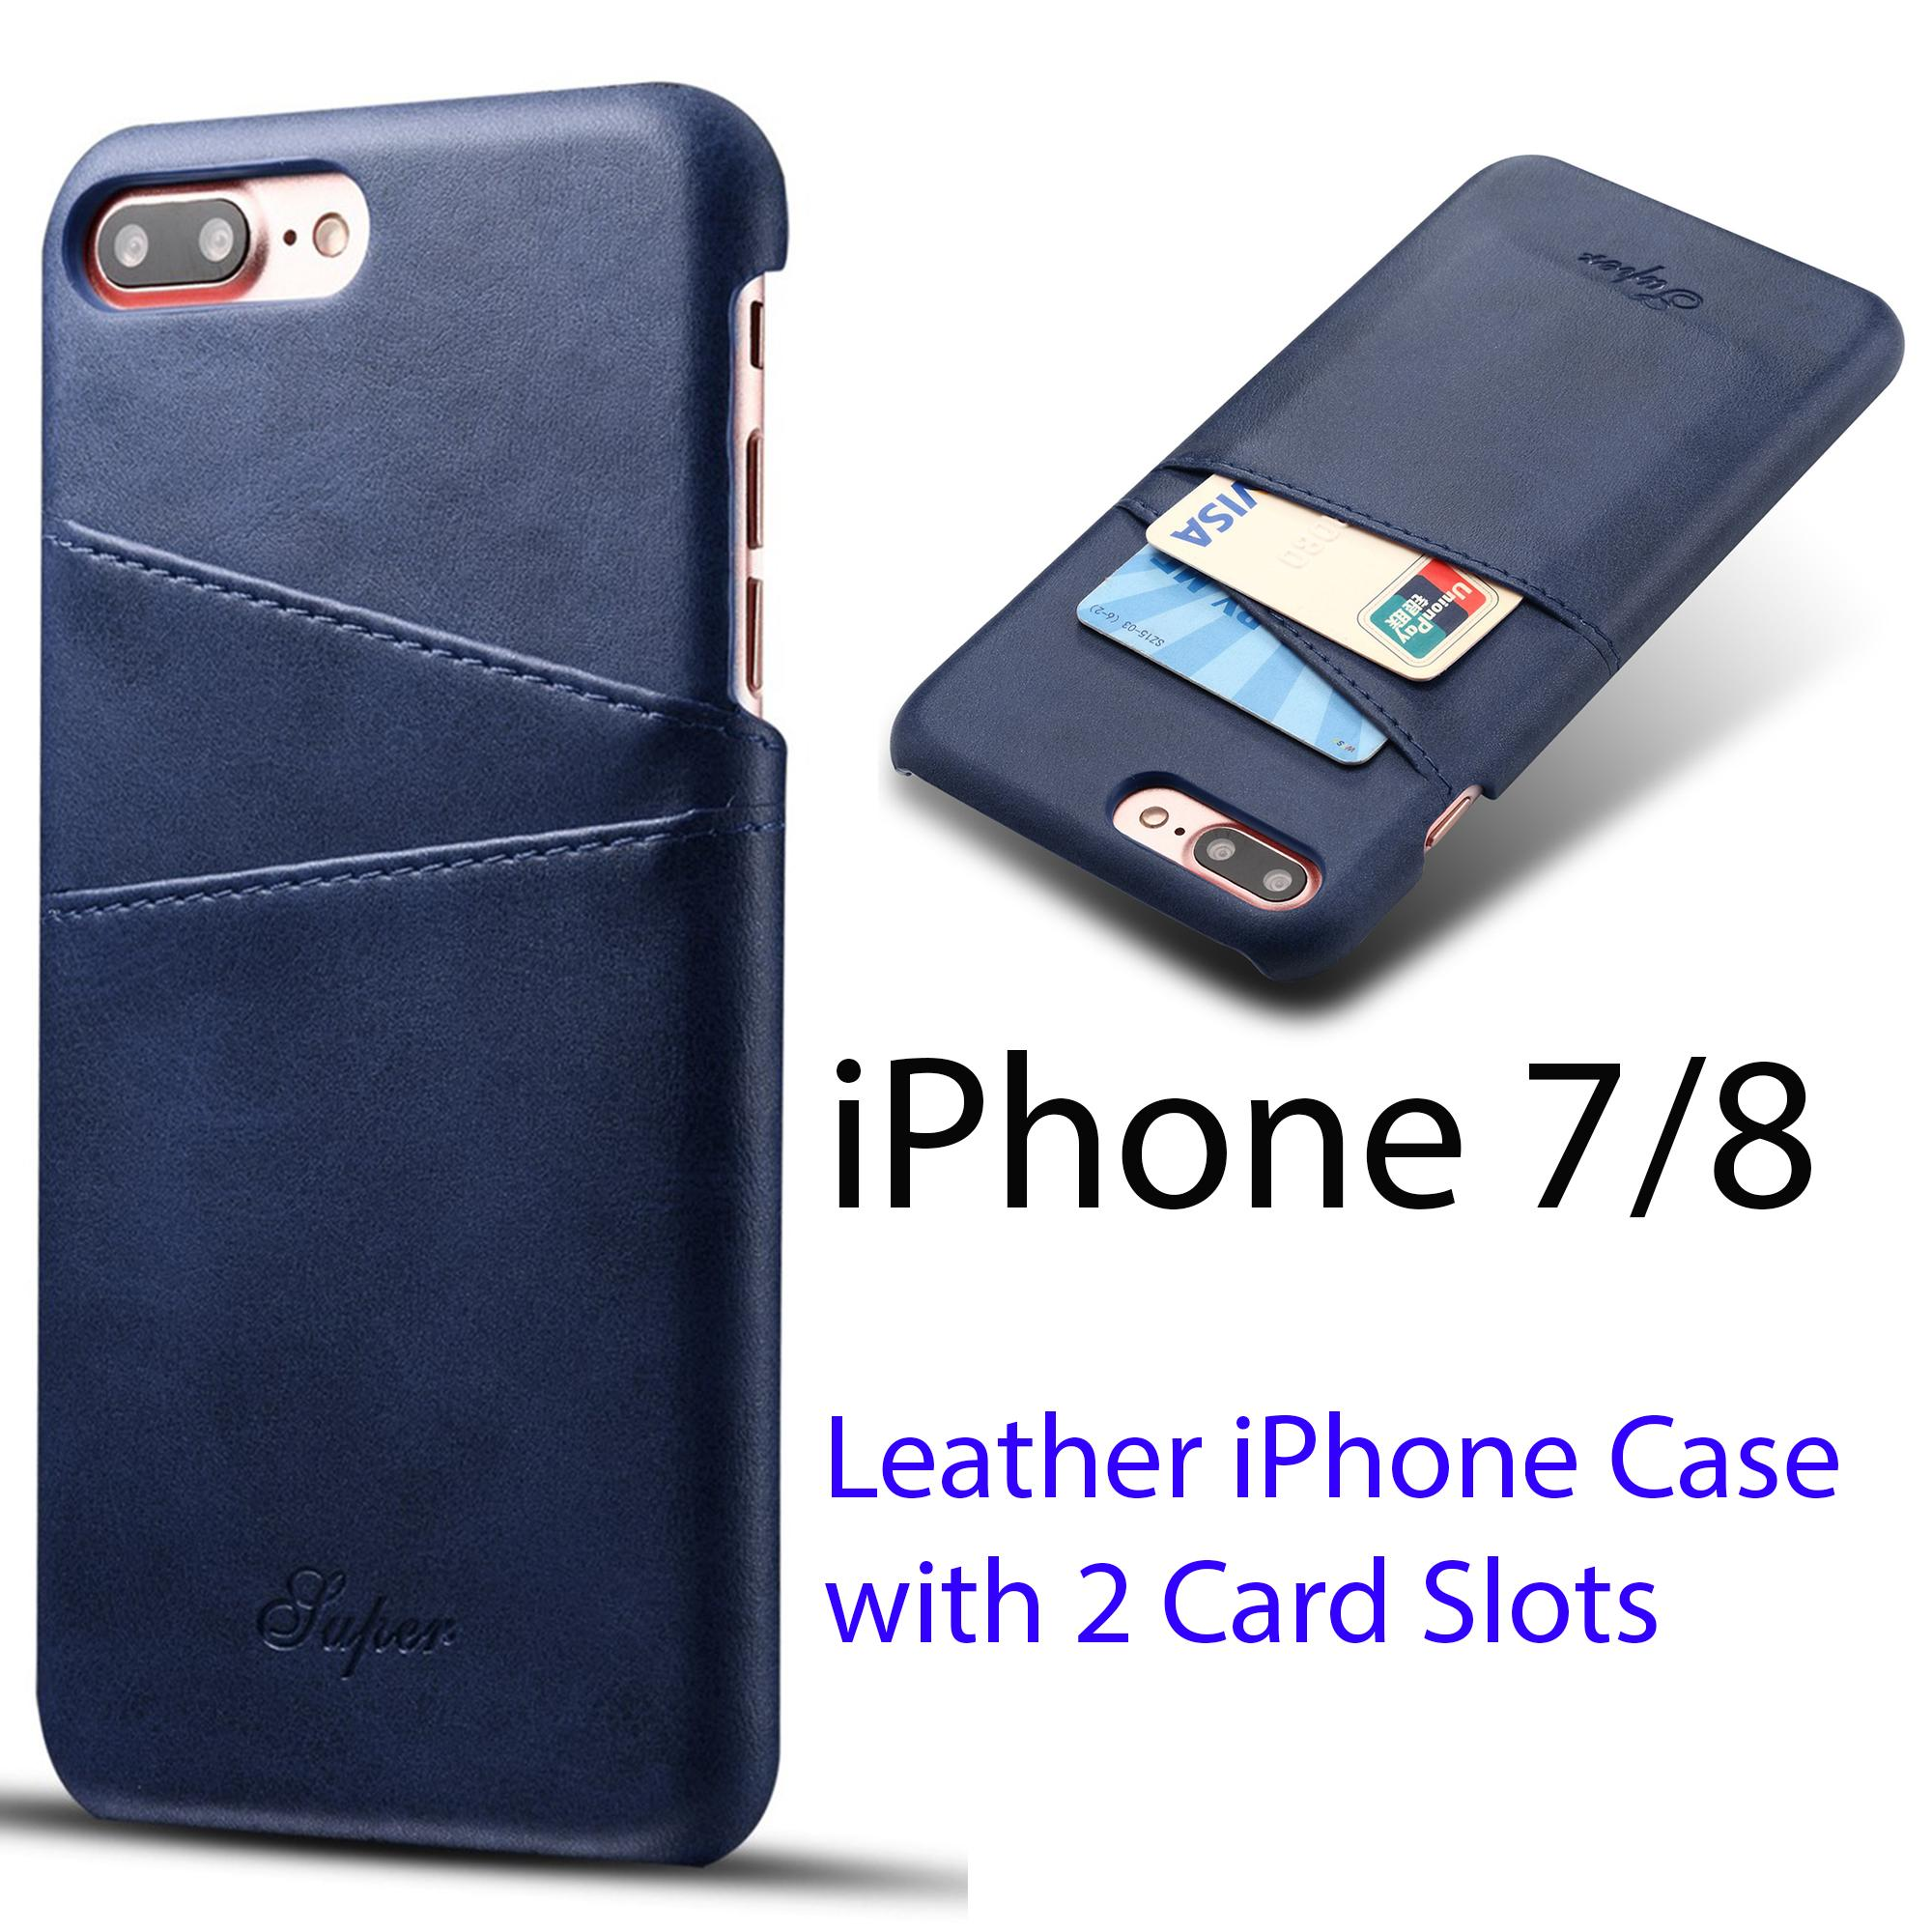 [iPhone 7 and iPhone 8 (4.7 inch)] Luxury High Quality PU Leather